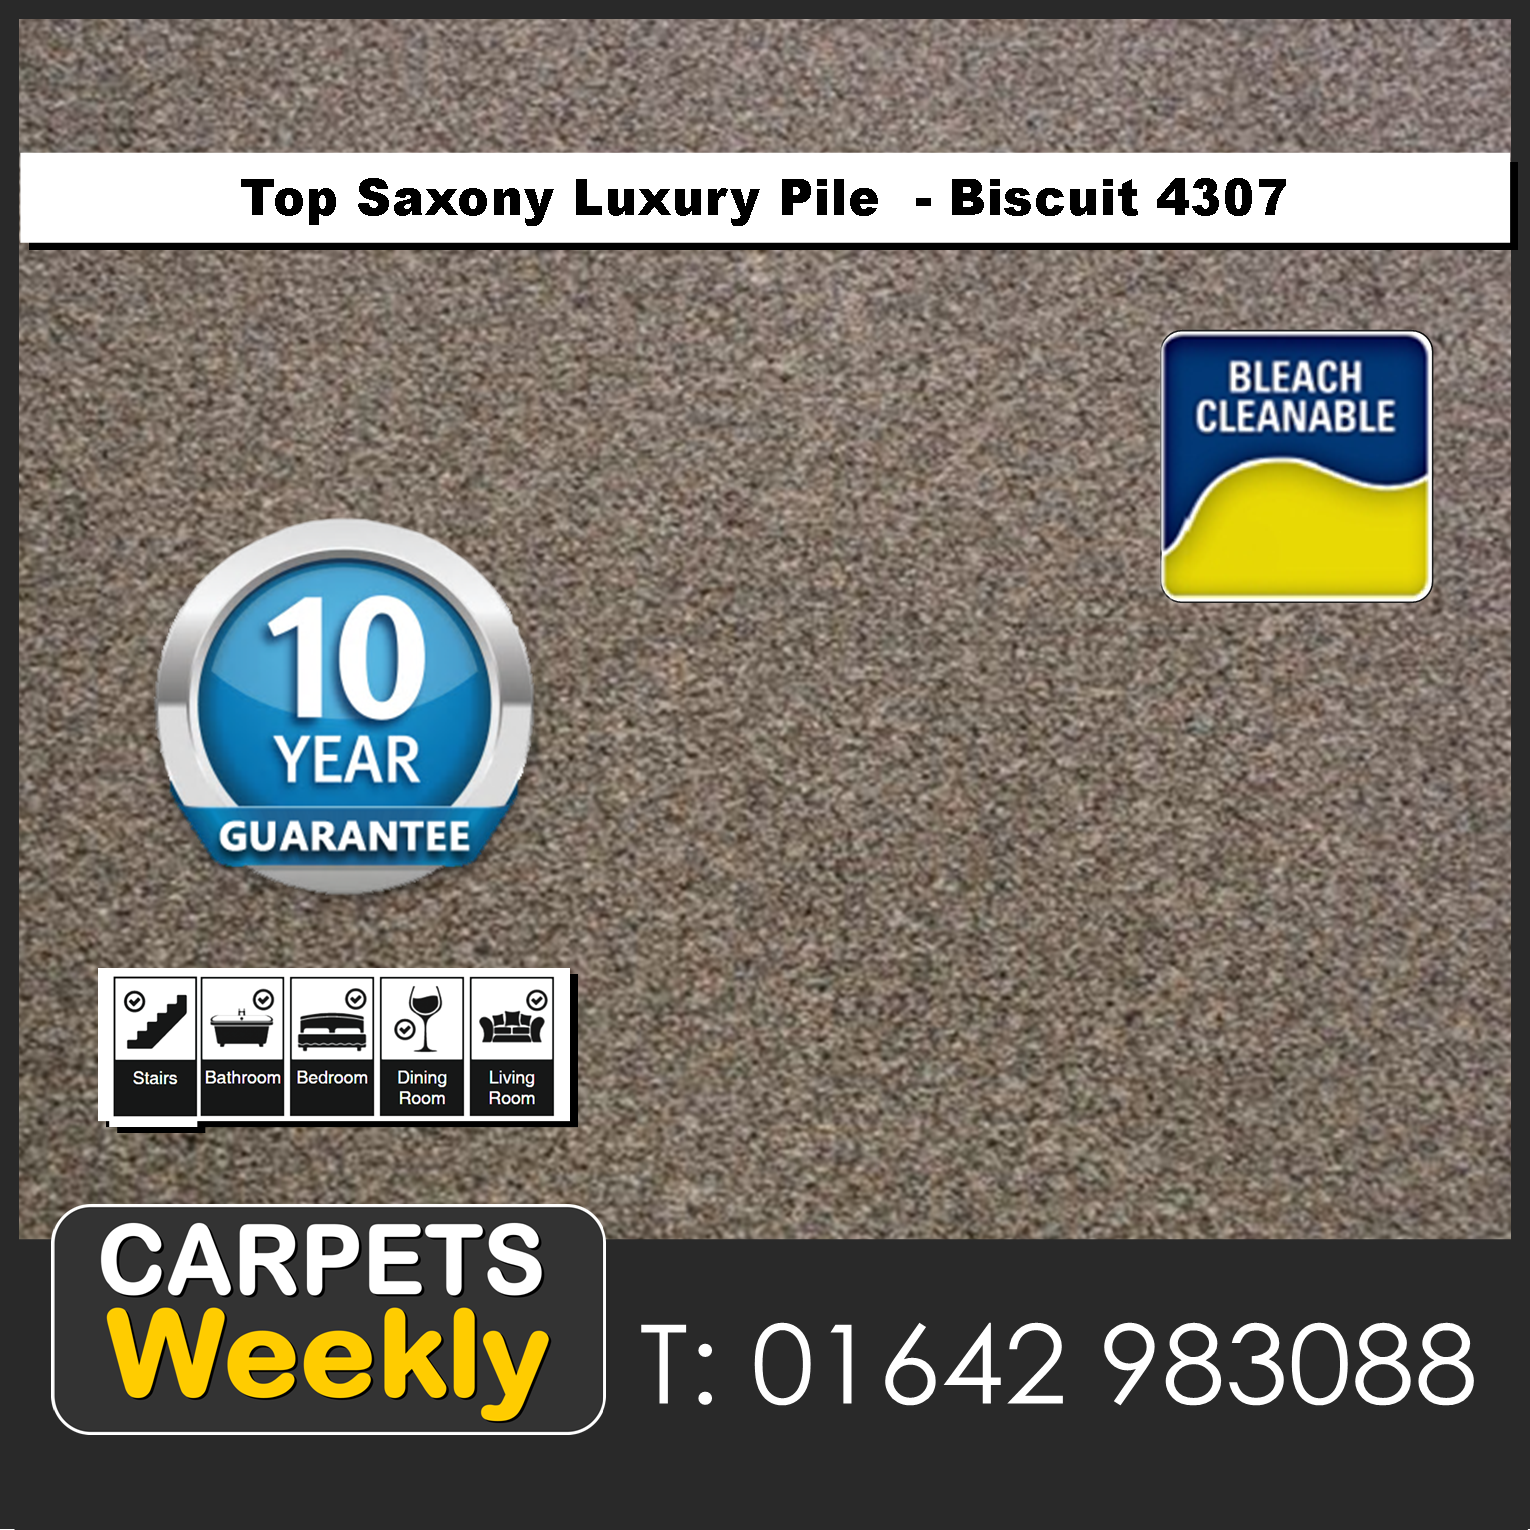 Top Saxony Biscuit 4307 carpet. Carpets Weekly